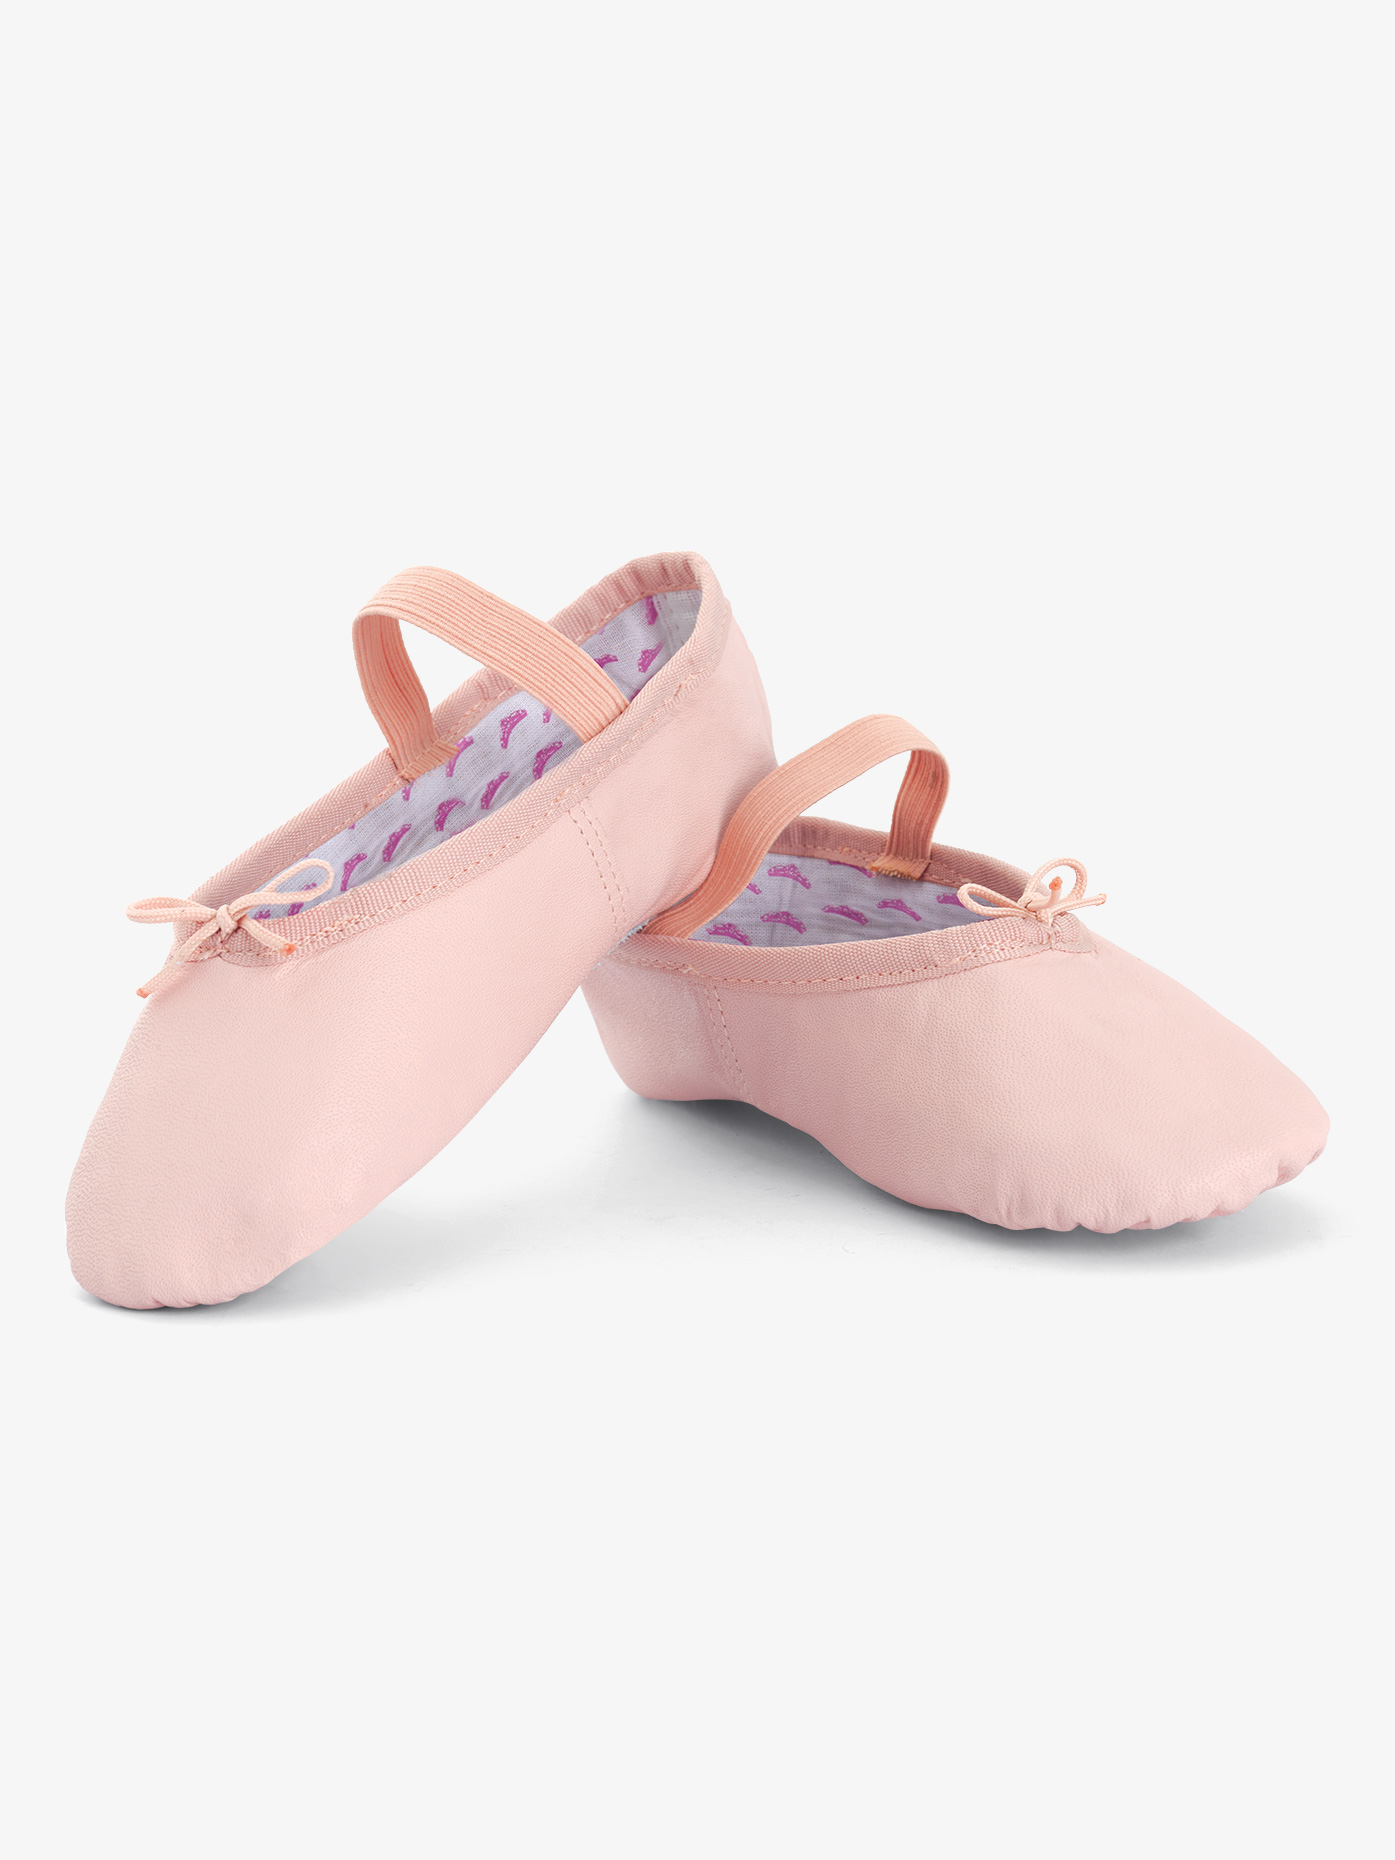 Theatricals Girls Princess Full Sole Leather Ballet Shoes T1015C